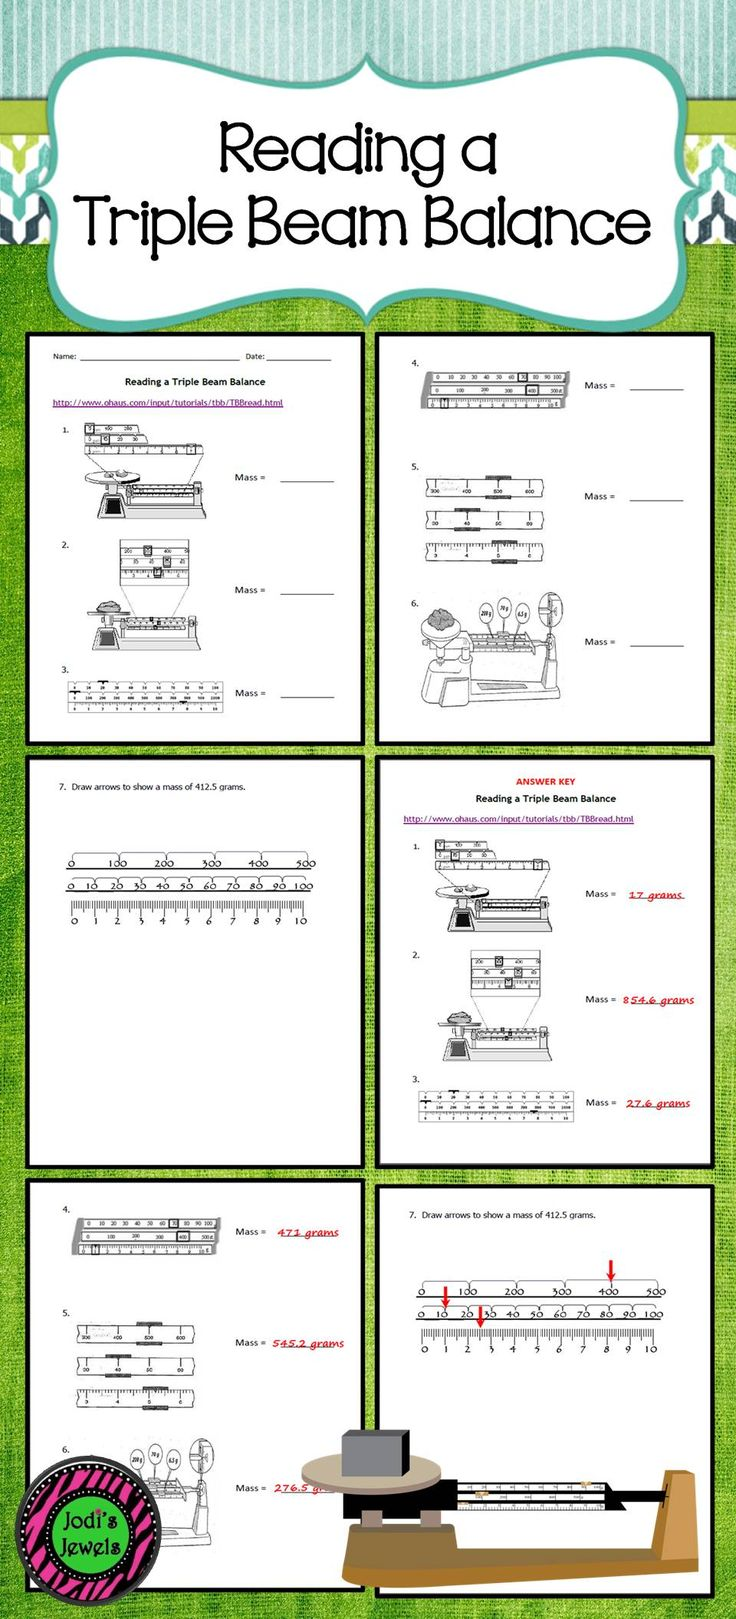 Reading Triple Beam Balance Practice Worksheets